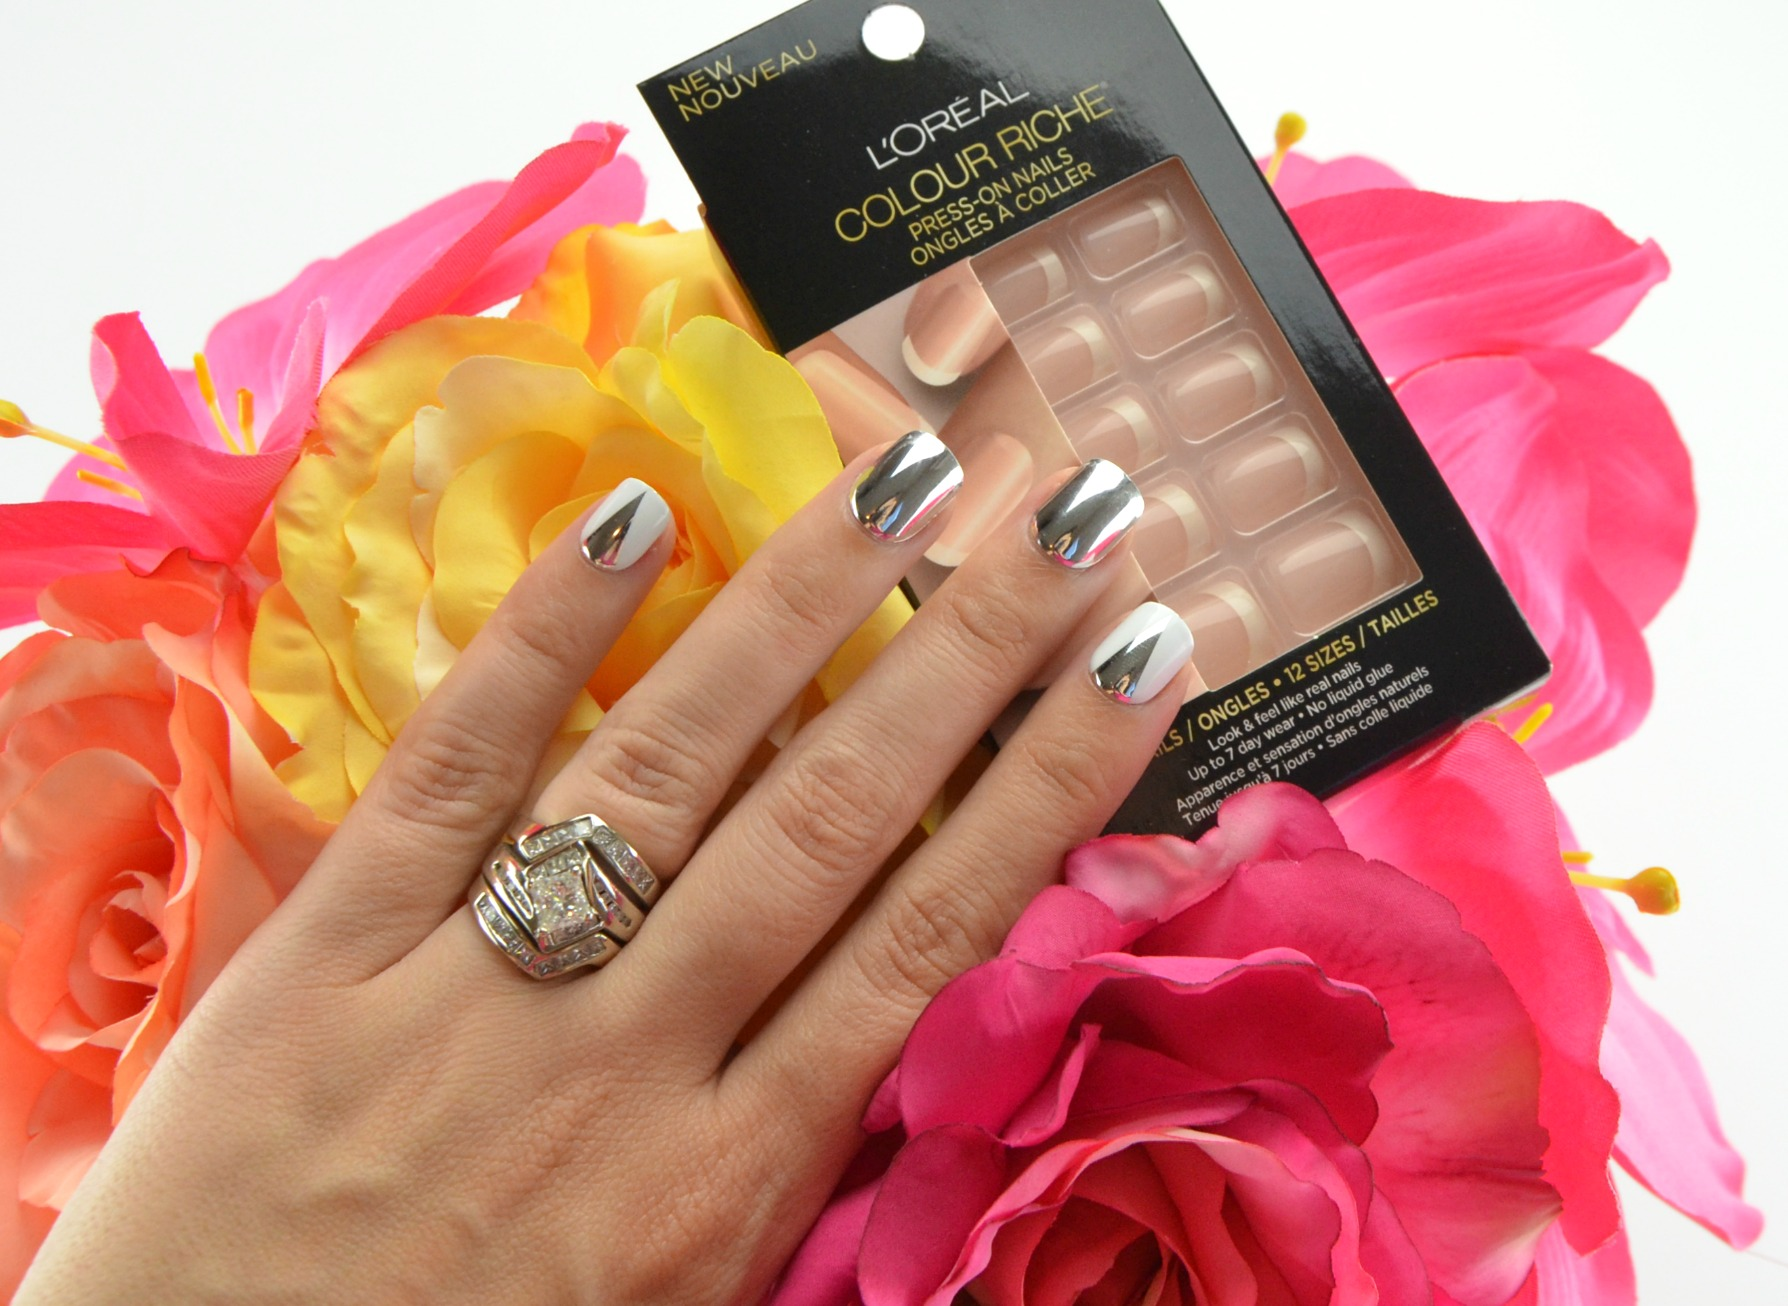 L'Oreal Paris Colour Riche, Nail Press-On